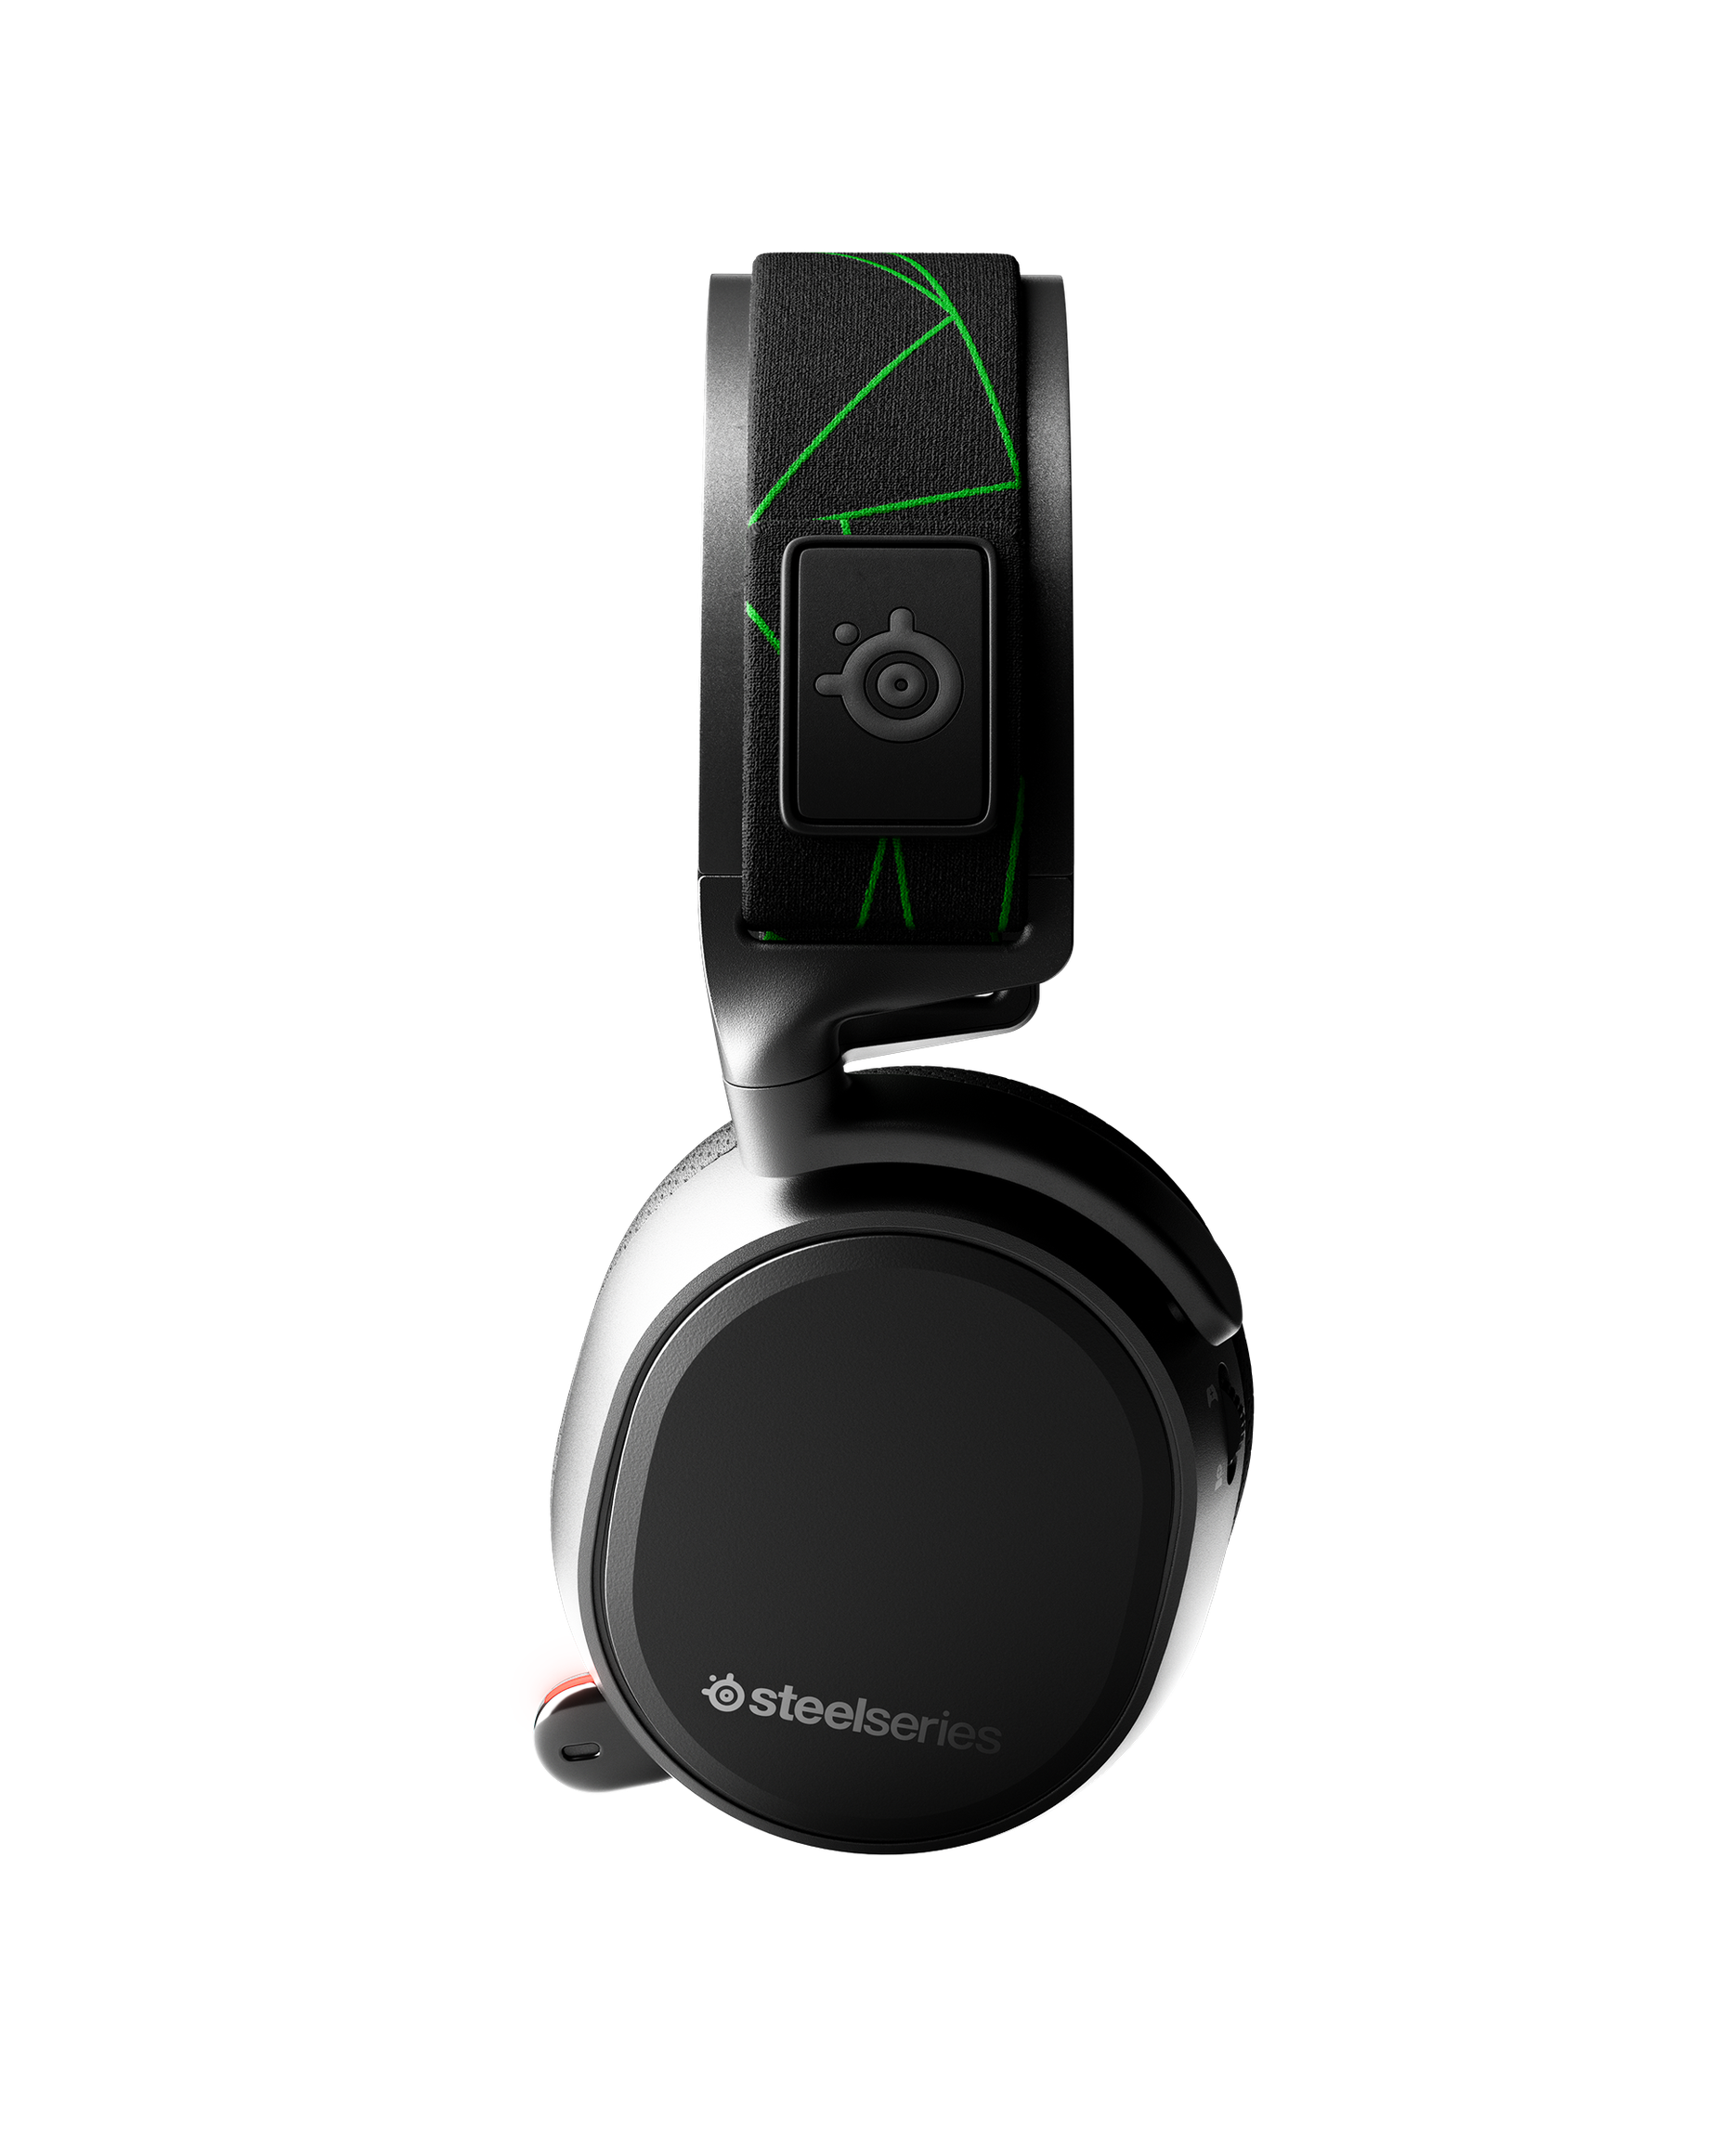 Arctis 9X viewed from the side profile